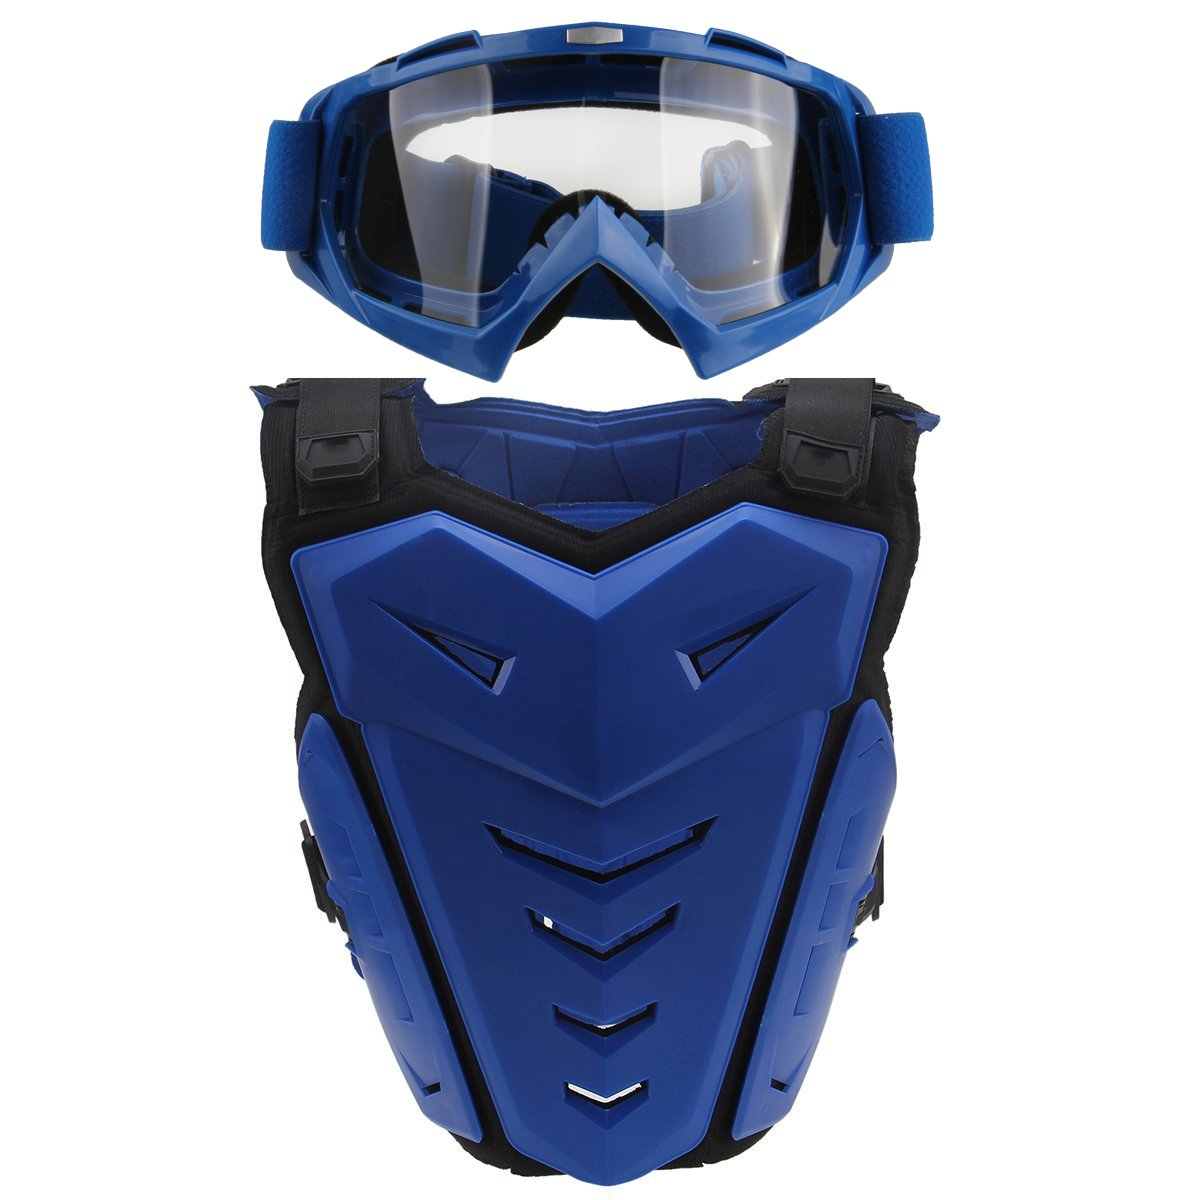 Chest Back Protector with Goggles,POSSBAY Motorcycle Gear Armor Glasses Set XL Blue for Scooter Motocross Dirt Bike Skiing Riding Cycling Skating